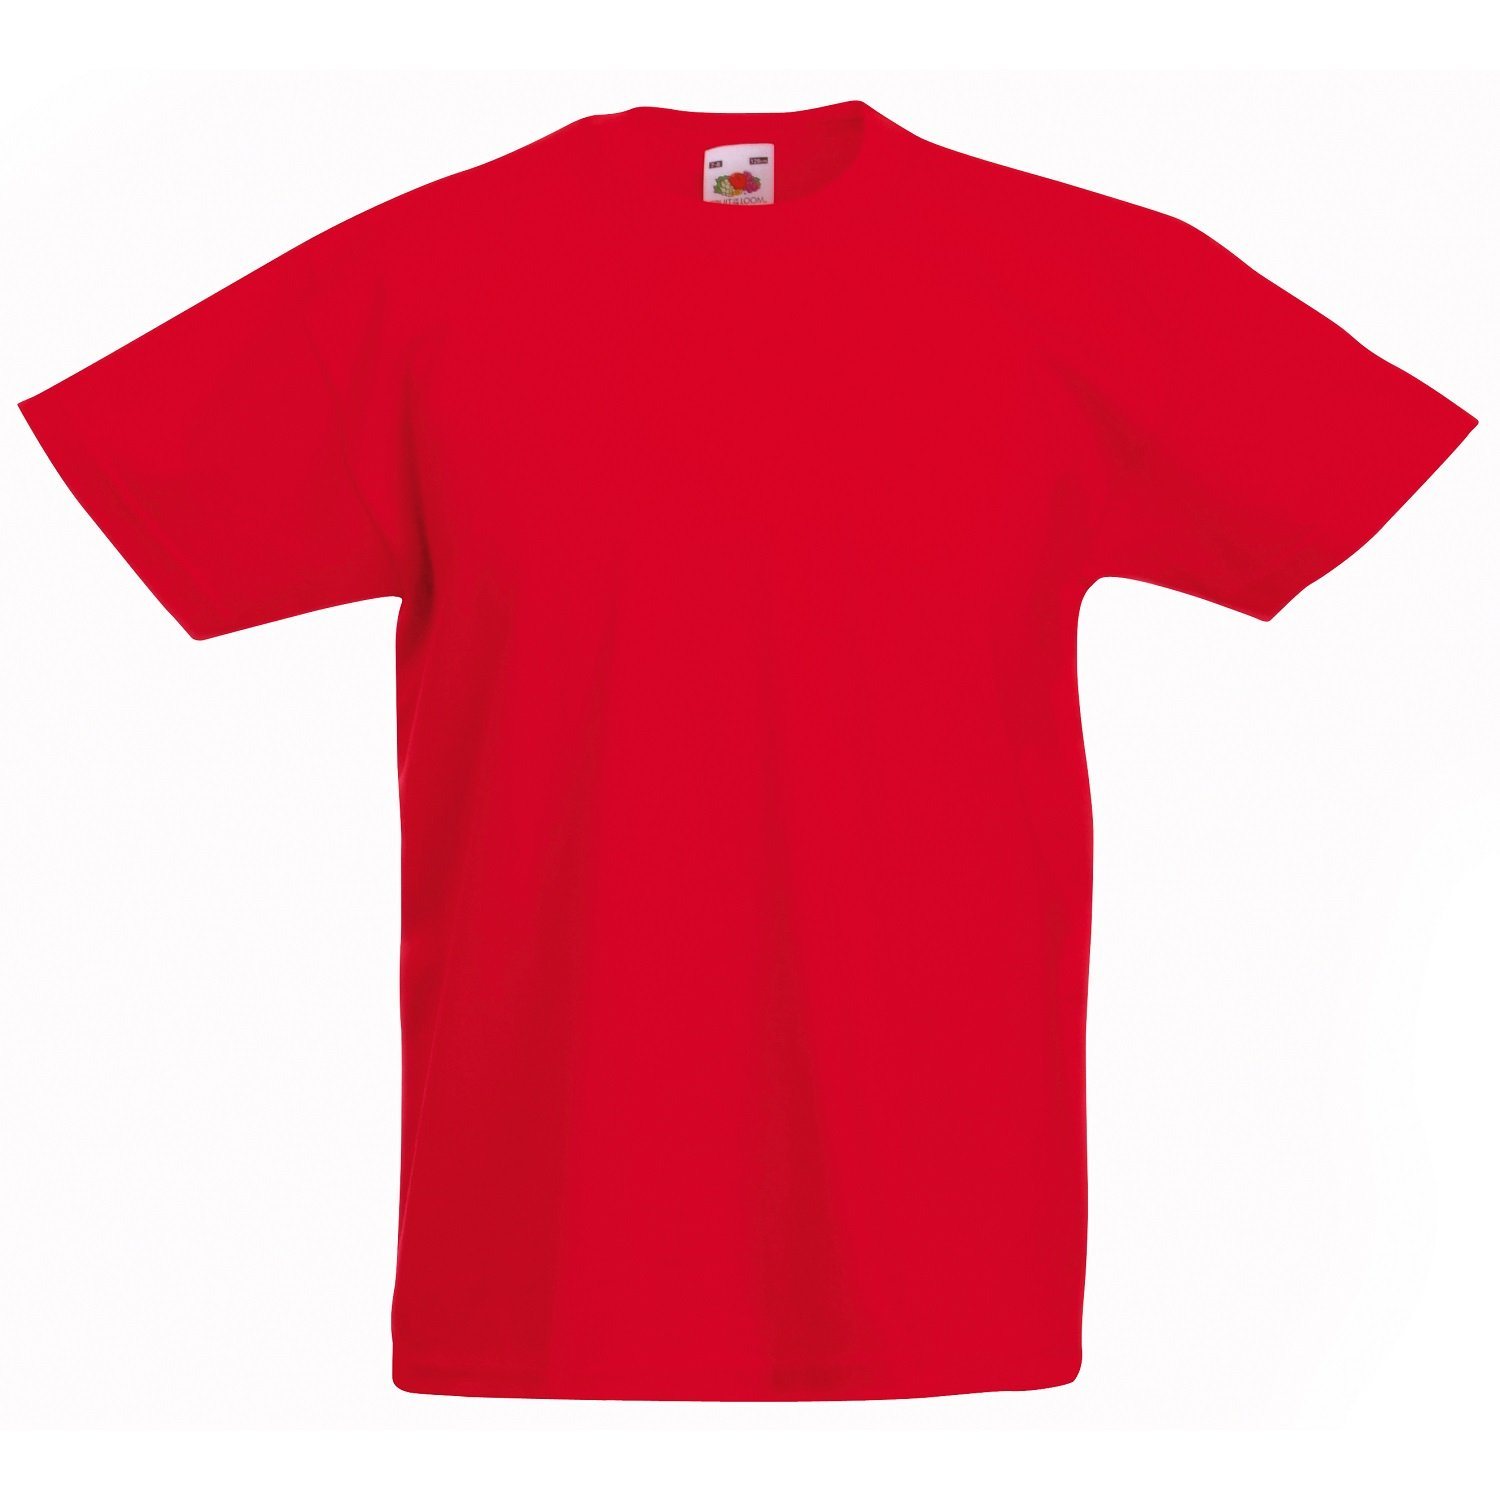 Red t shirt artee shirt for The red t shirt company